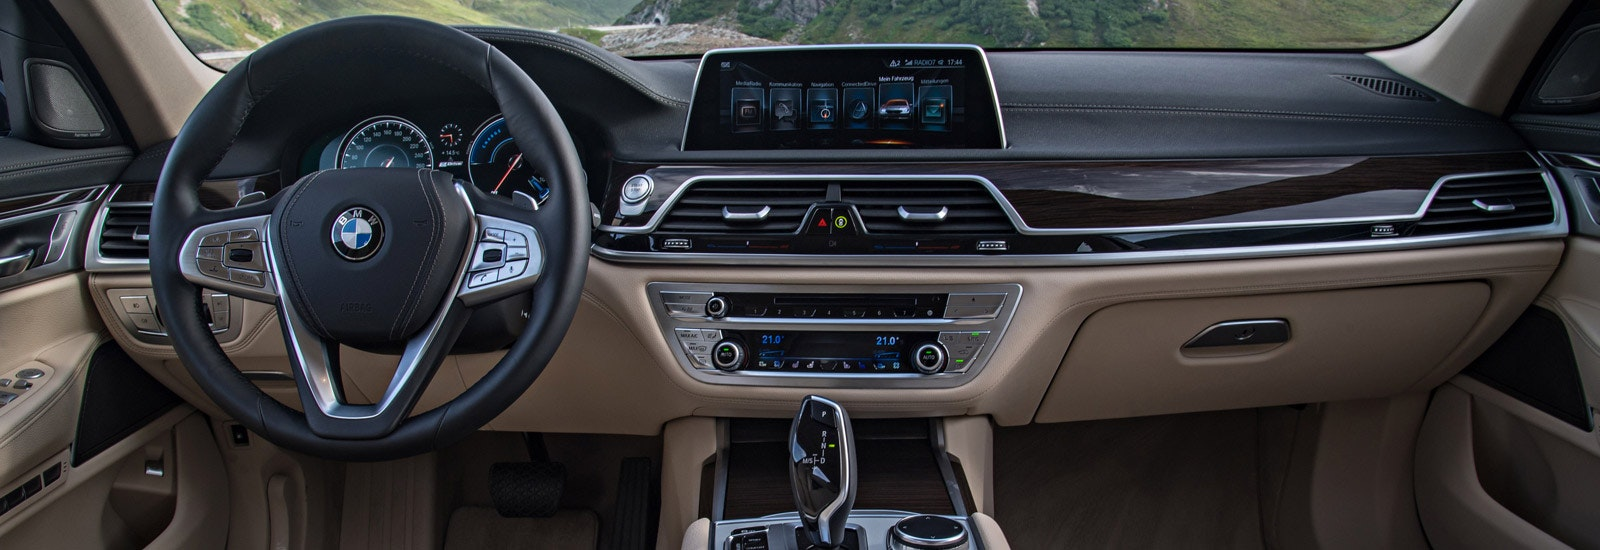 New Bmw X5 Interior 2019 | Awesome Home